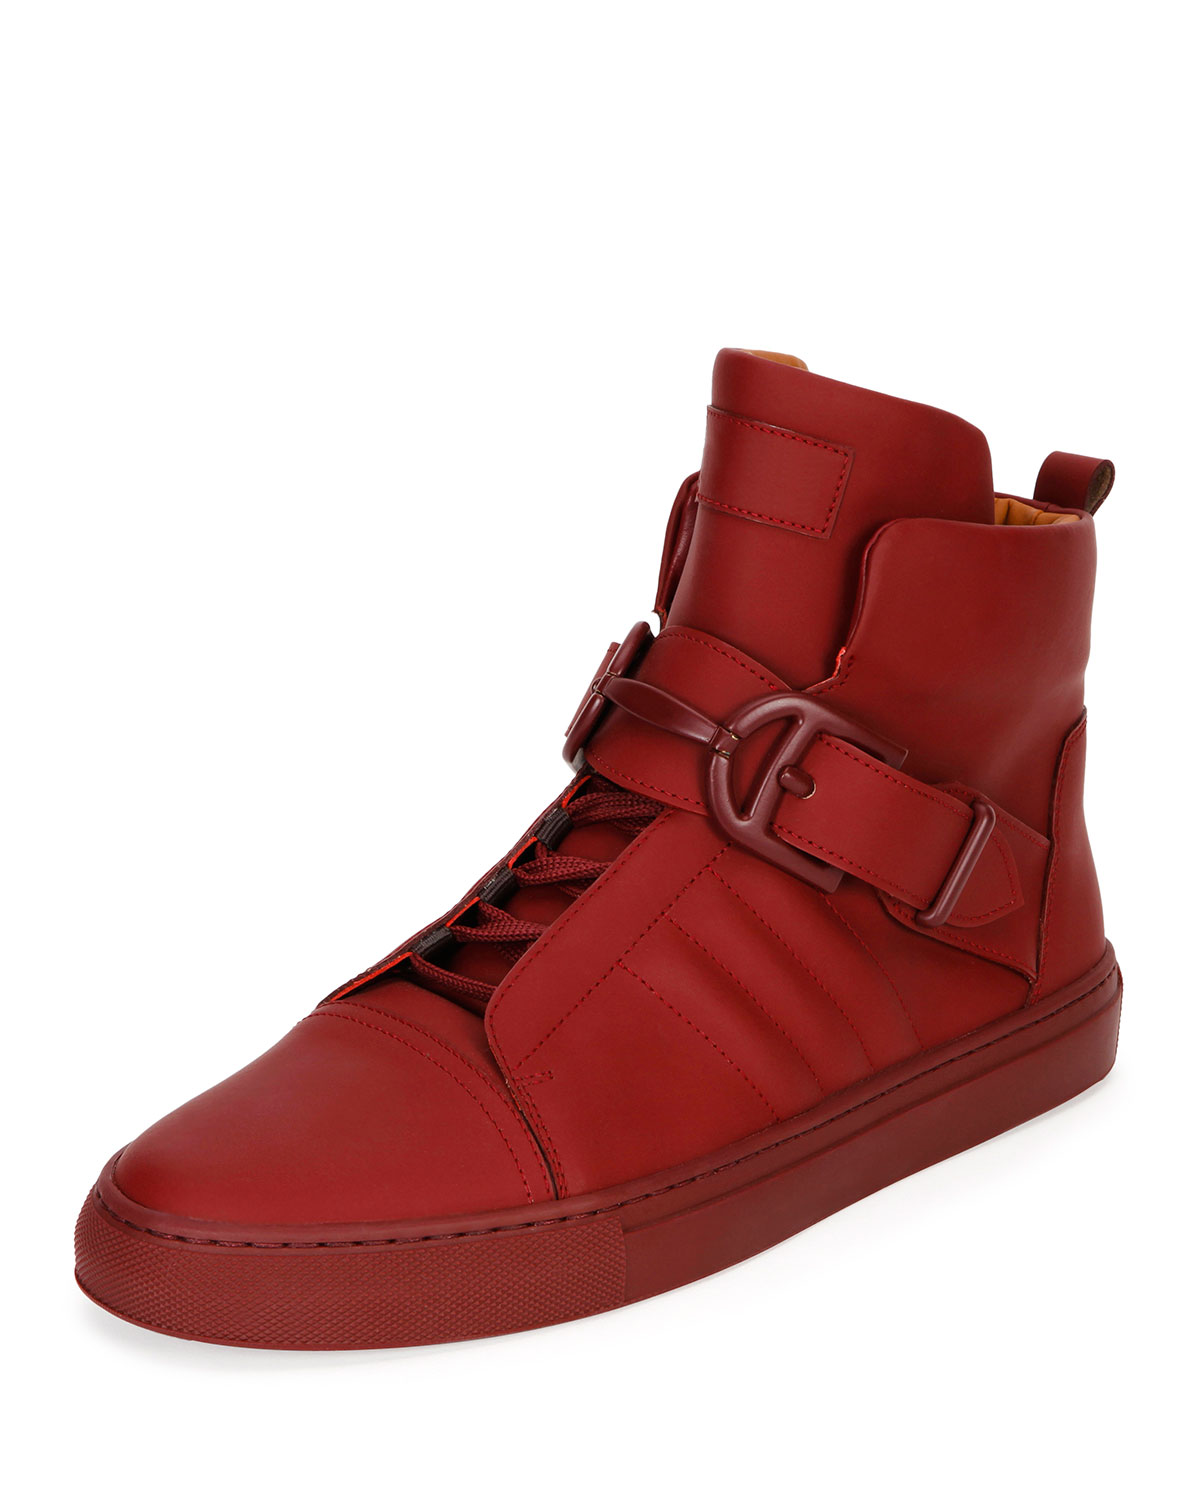 c6b73e73ac7 Heilwing Rubberized Leather High-Top Sneaker, Dark Red